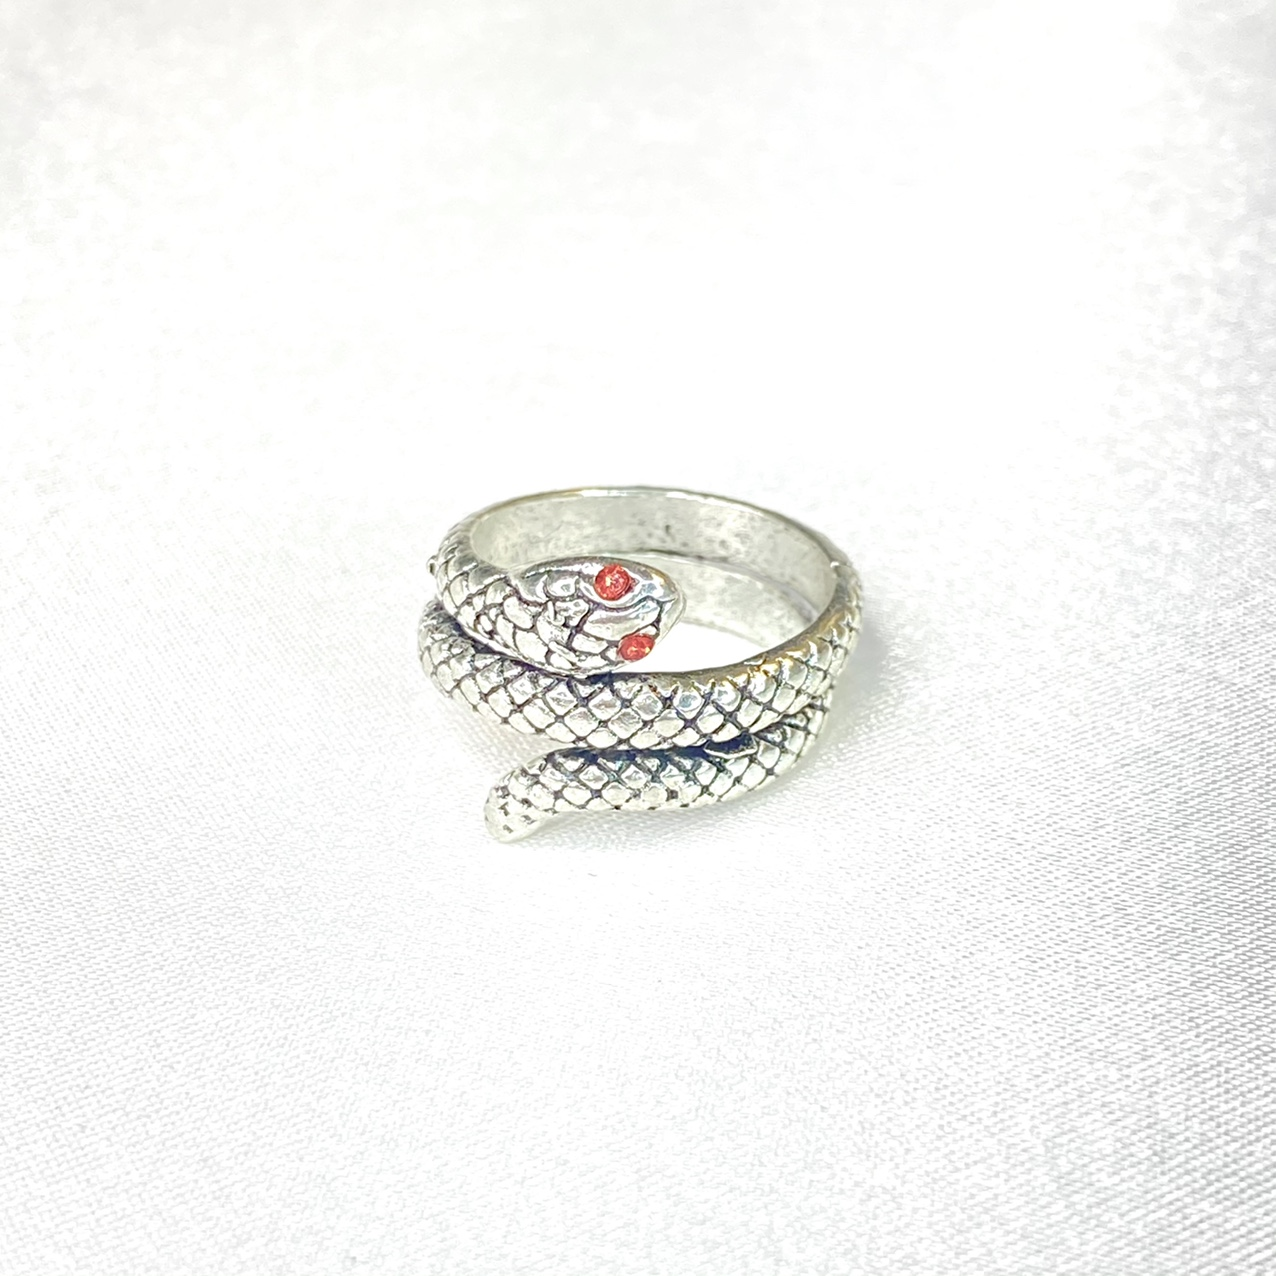 Product Image 1 - Red Eyed Snake Ring   ꕥ